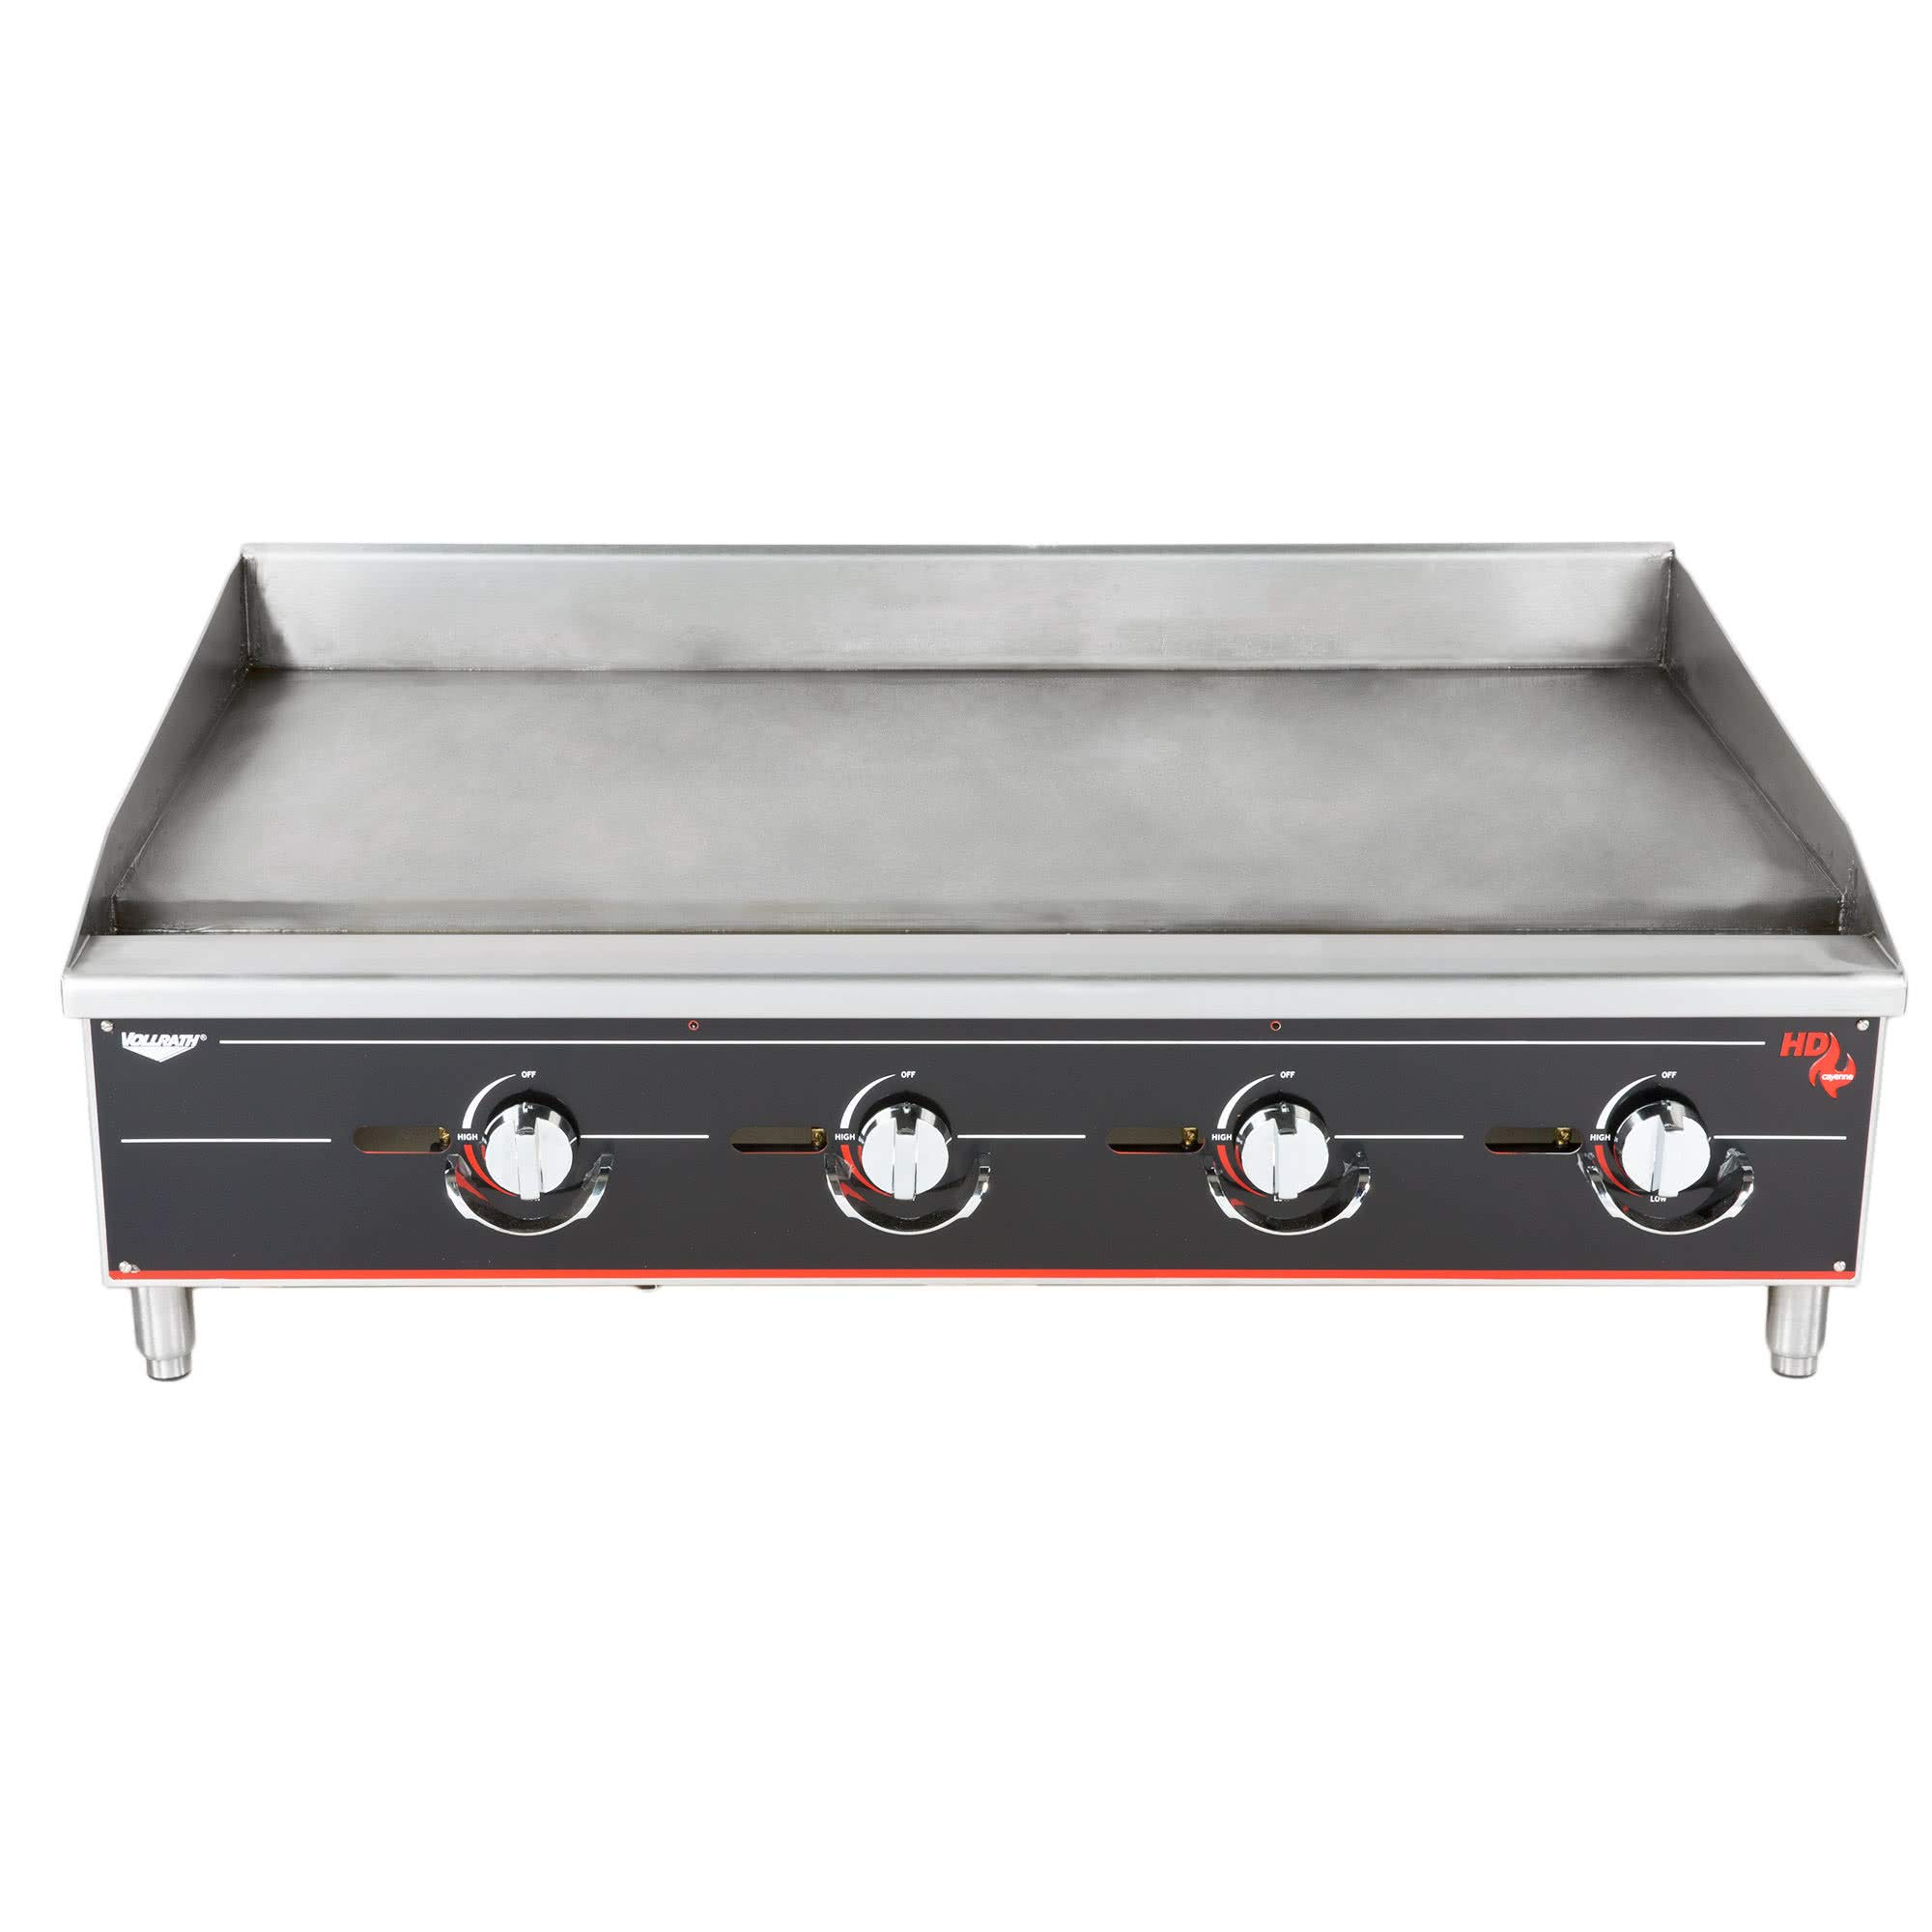 TableTop King 948GGM Cayenne 48'' Heavy Duty Countertop Griddle with Manual Controls - 120,000 BTU